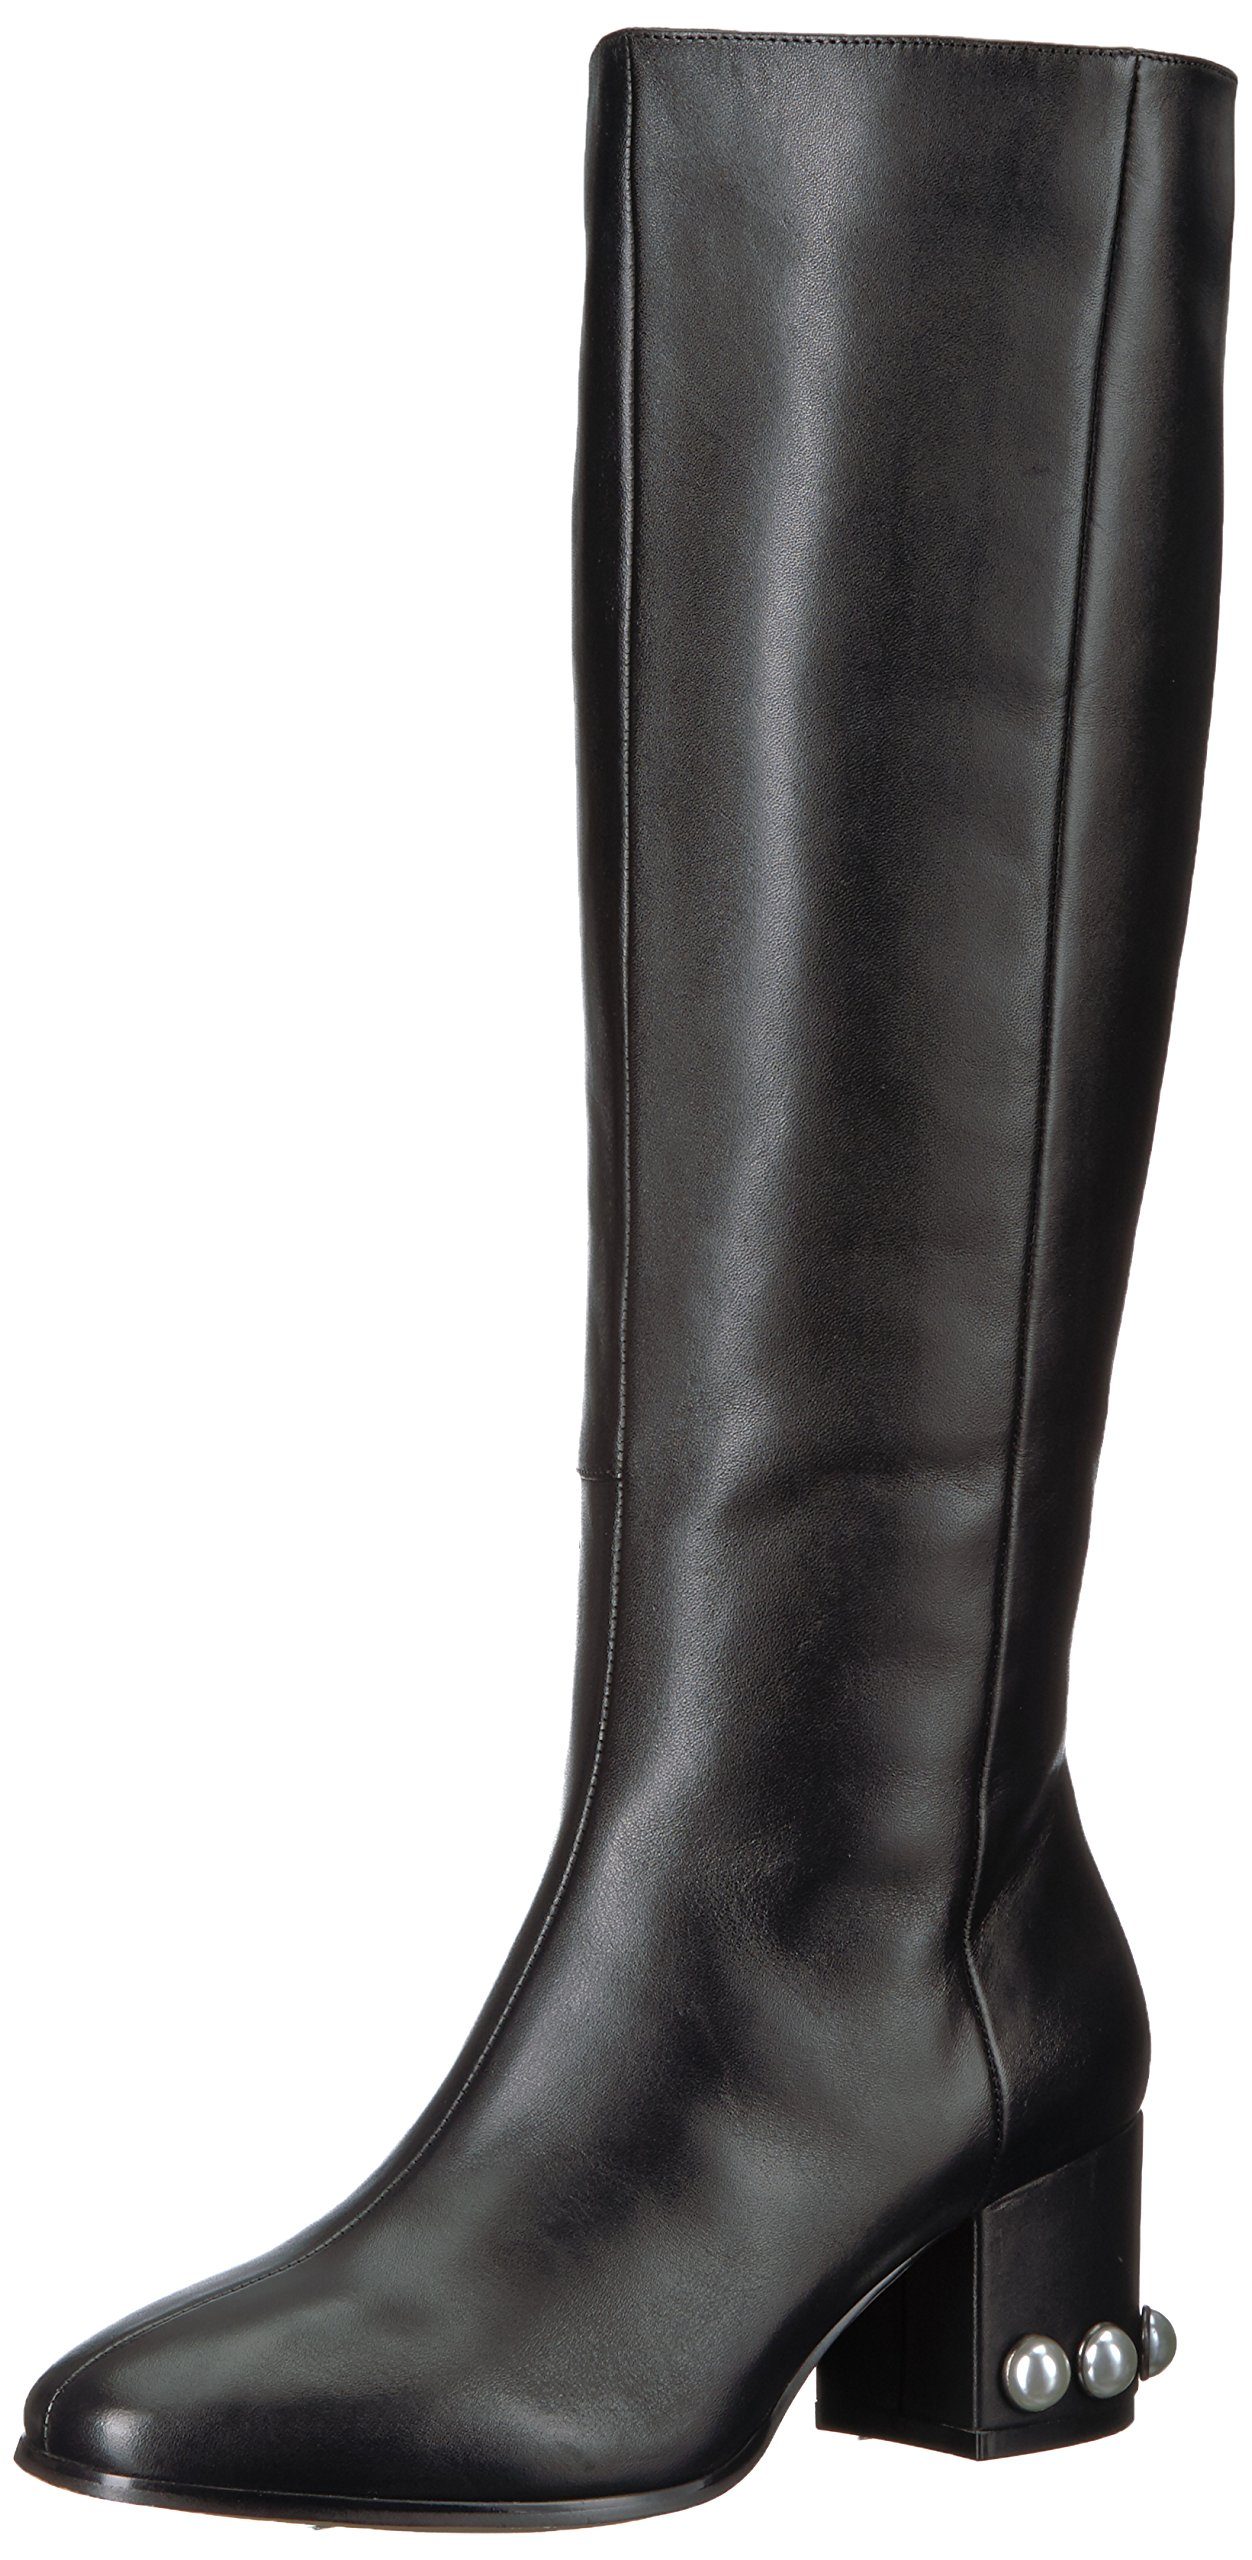 Amazon Brand - The Fix Women's Juliette Pearl Studded-Heel Knee High Boot, Black Leather, 7 B US by The Fix